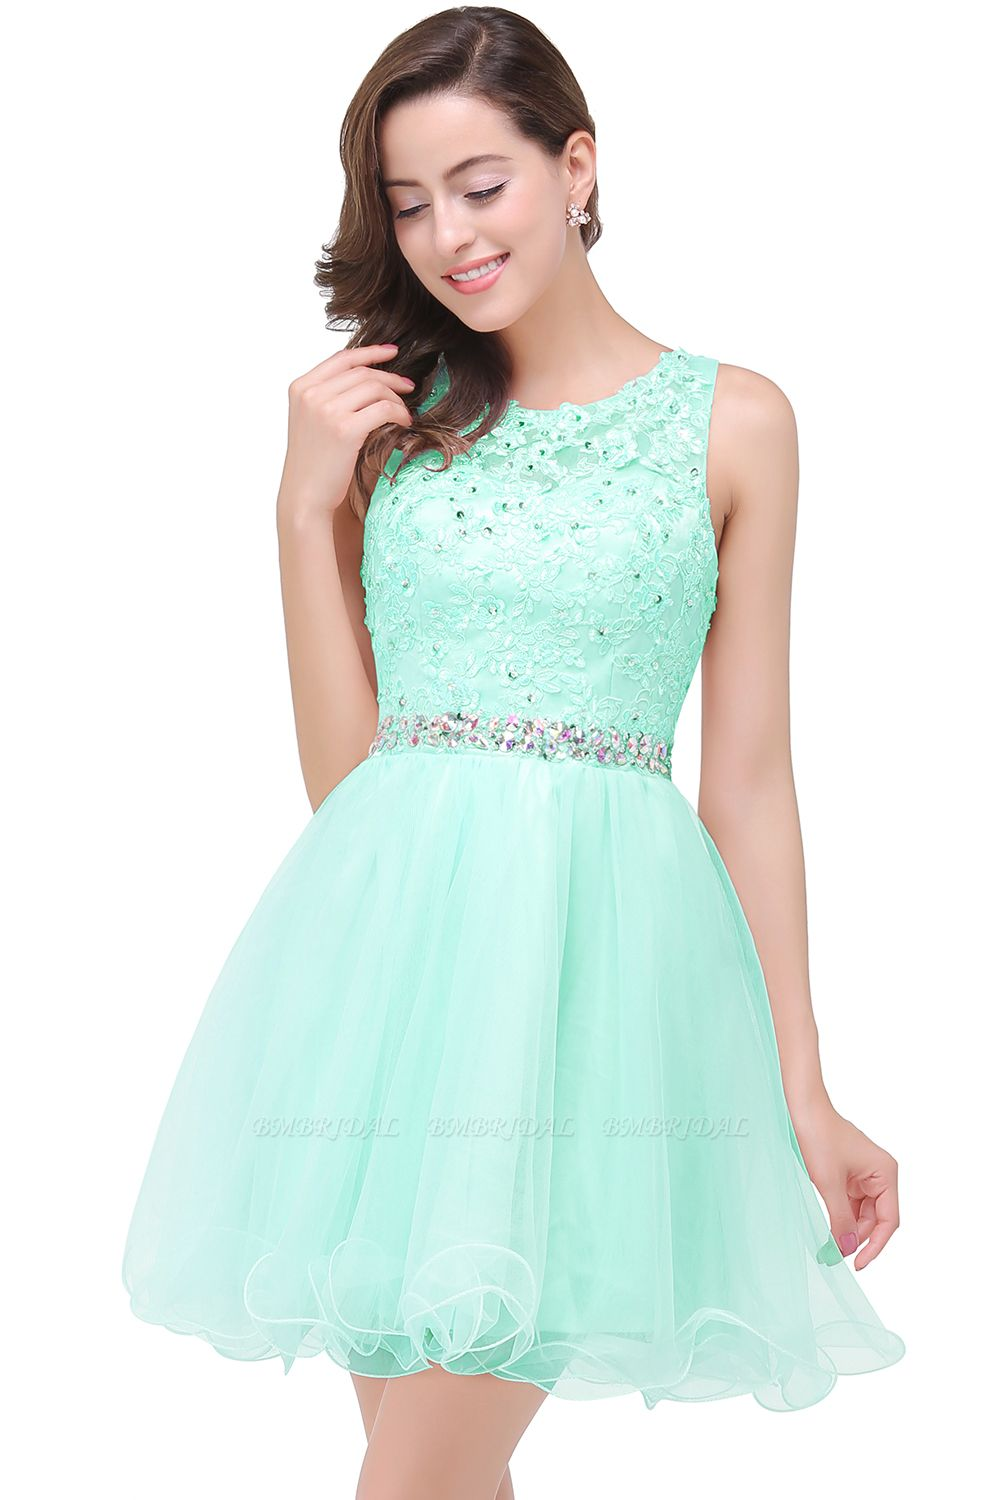 BMbridal A-line Knee-length Tulle Prom Dress with Appliques